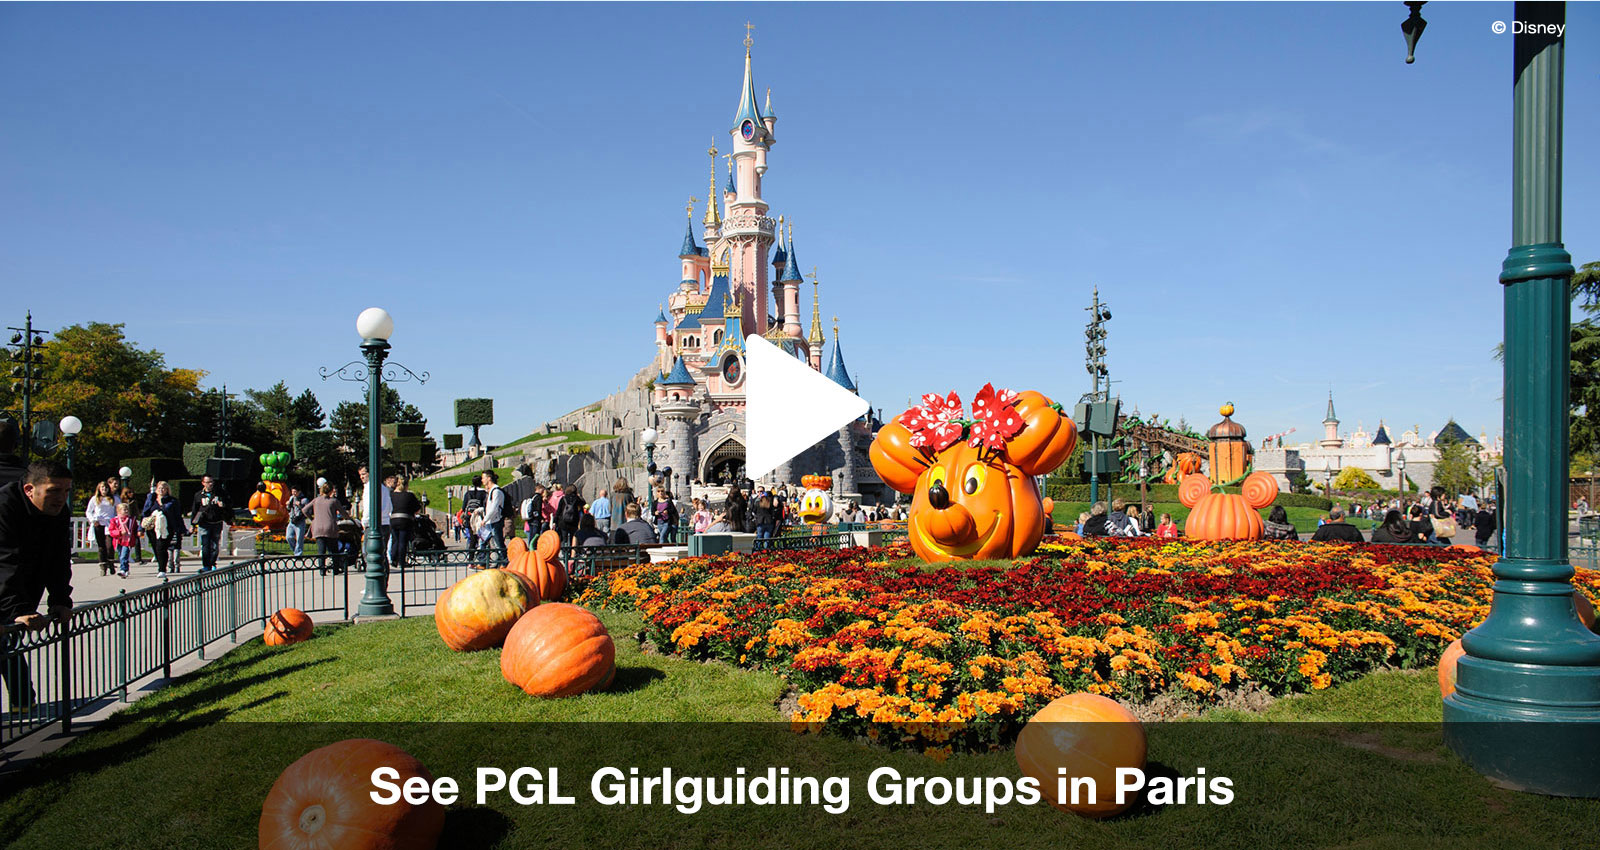 Paris & Disney offers for Girlguiding UK groups